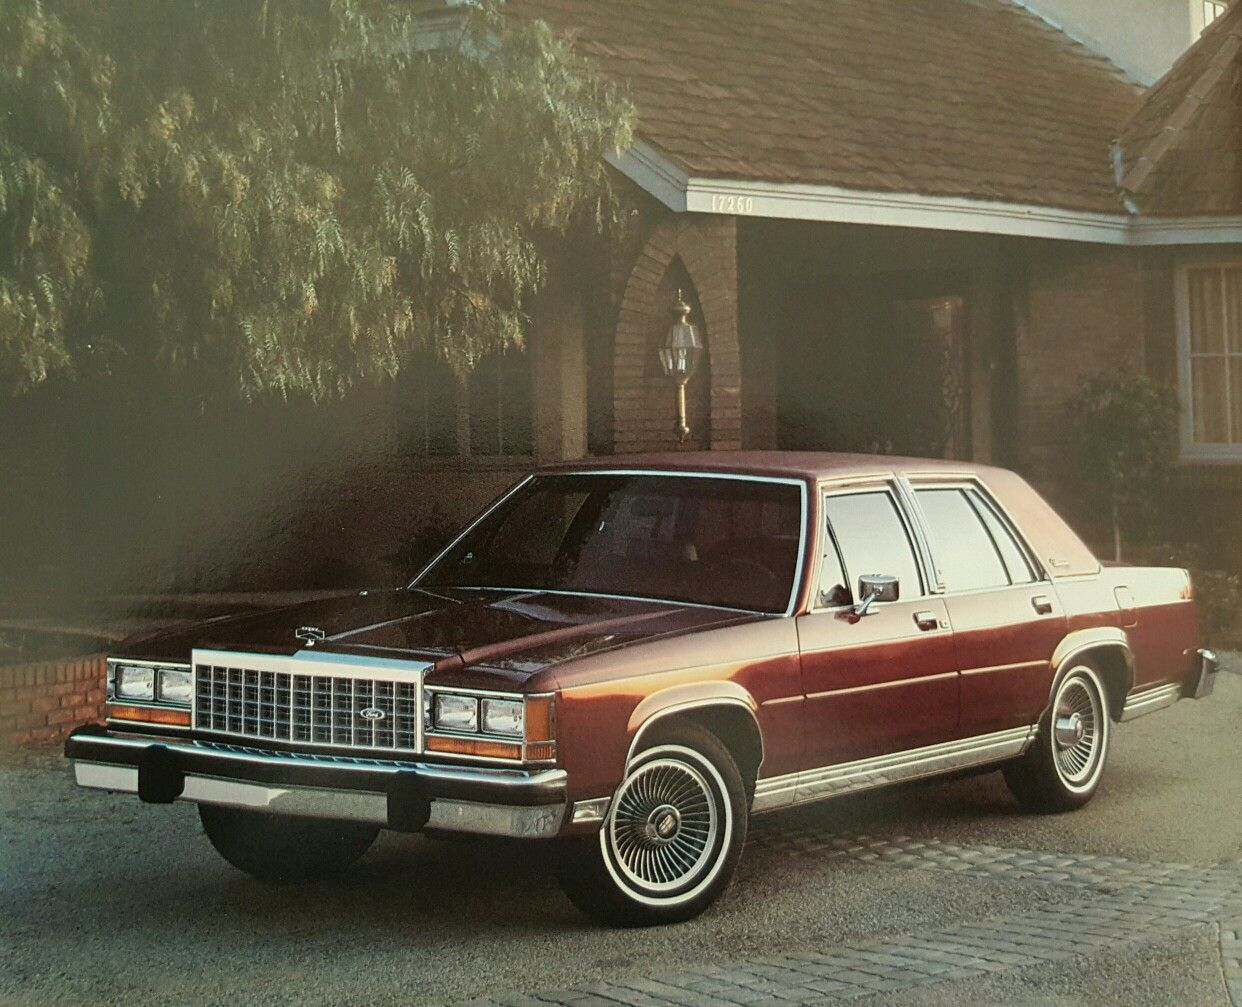 1985 ford ltd crown victoria brougham [ 1242 x 1007 Pixel ]